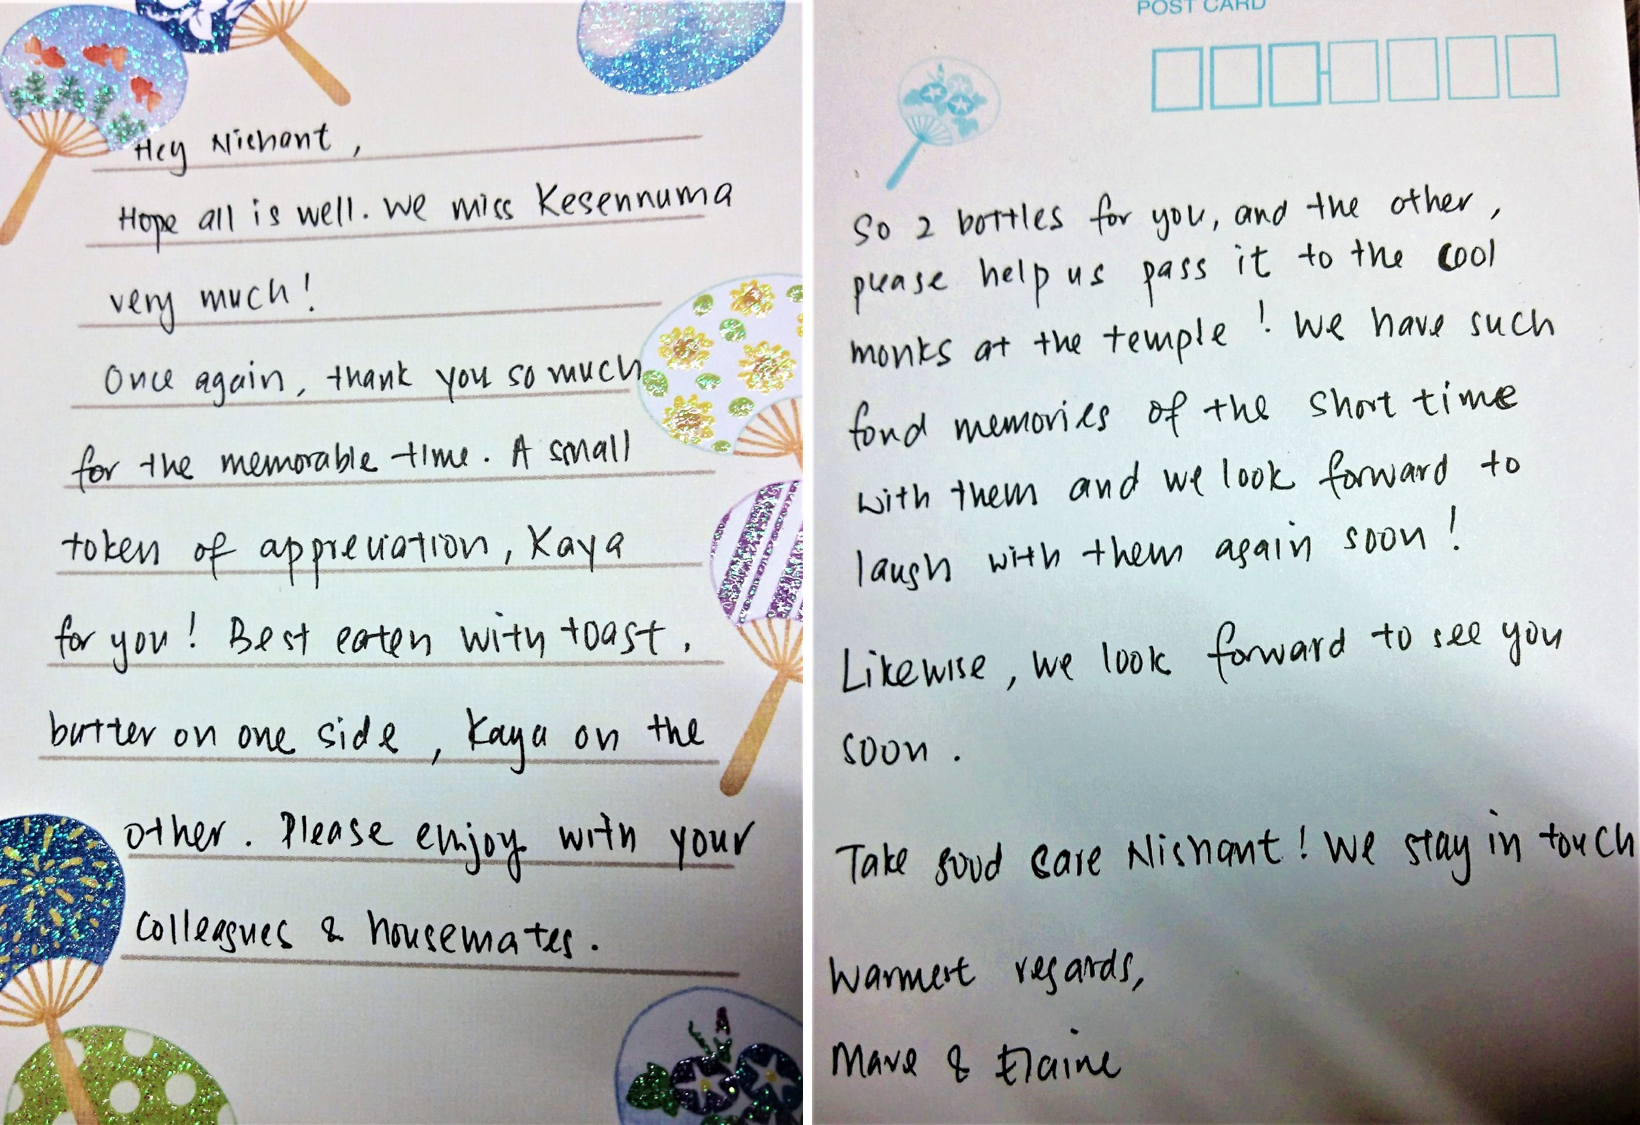 """the note says """"Hey Nishant, hope all is well. We miss Kesennuma very much! Once again, thank you so much for the memorable time. A small token of appreciation, Kaya for you! Best eaten with toast. butter on one side, kaya on the other. Please enjoy with your colleagues and housemates. So 2 bottles for you, and the other, please help us pass it to the cool monks at the temple! We have such fond memories of the short time with them and we look forward to laugh with them again soon! Likewise, we look forward to see you again soon. Take good care Nishant! We stay in touch. warmest regards, Mave and Elaine."""""""